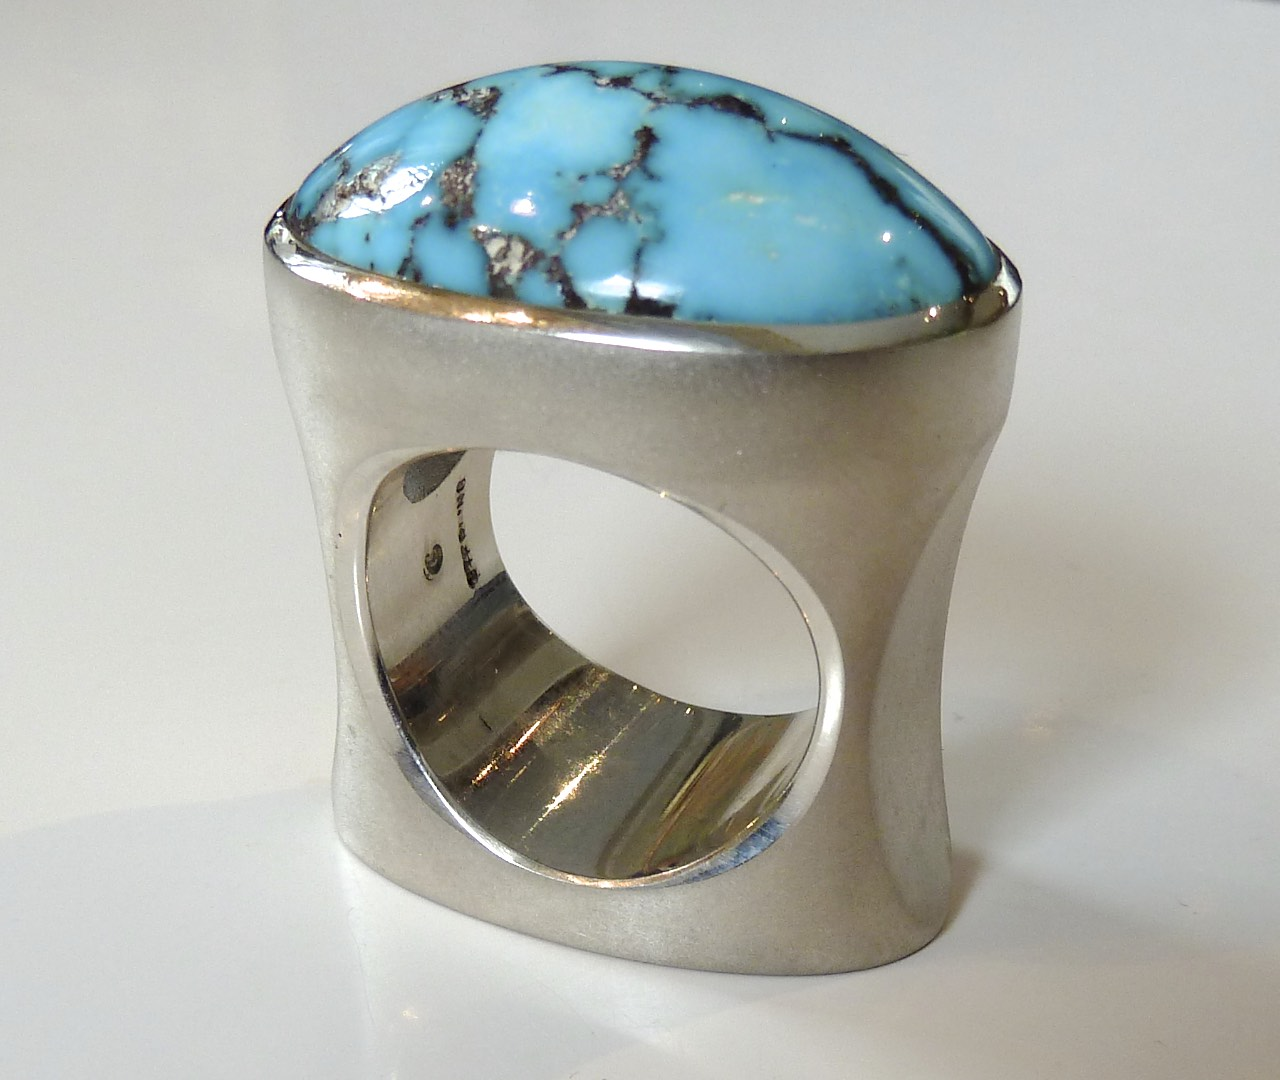 Ring,Turquoise Cabochon,Pal.silver, Bear claw.jpg